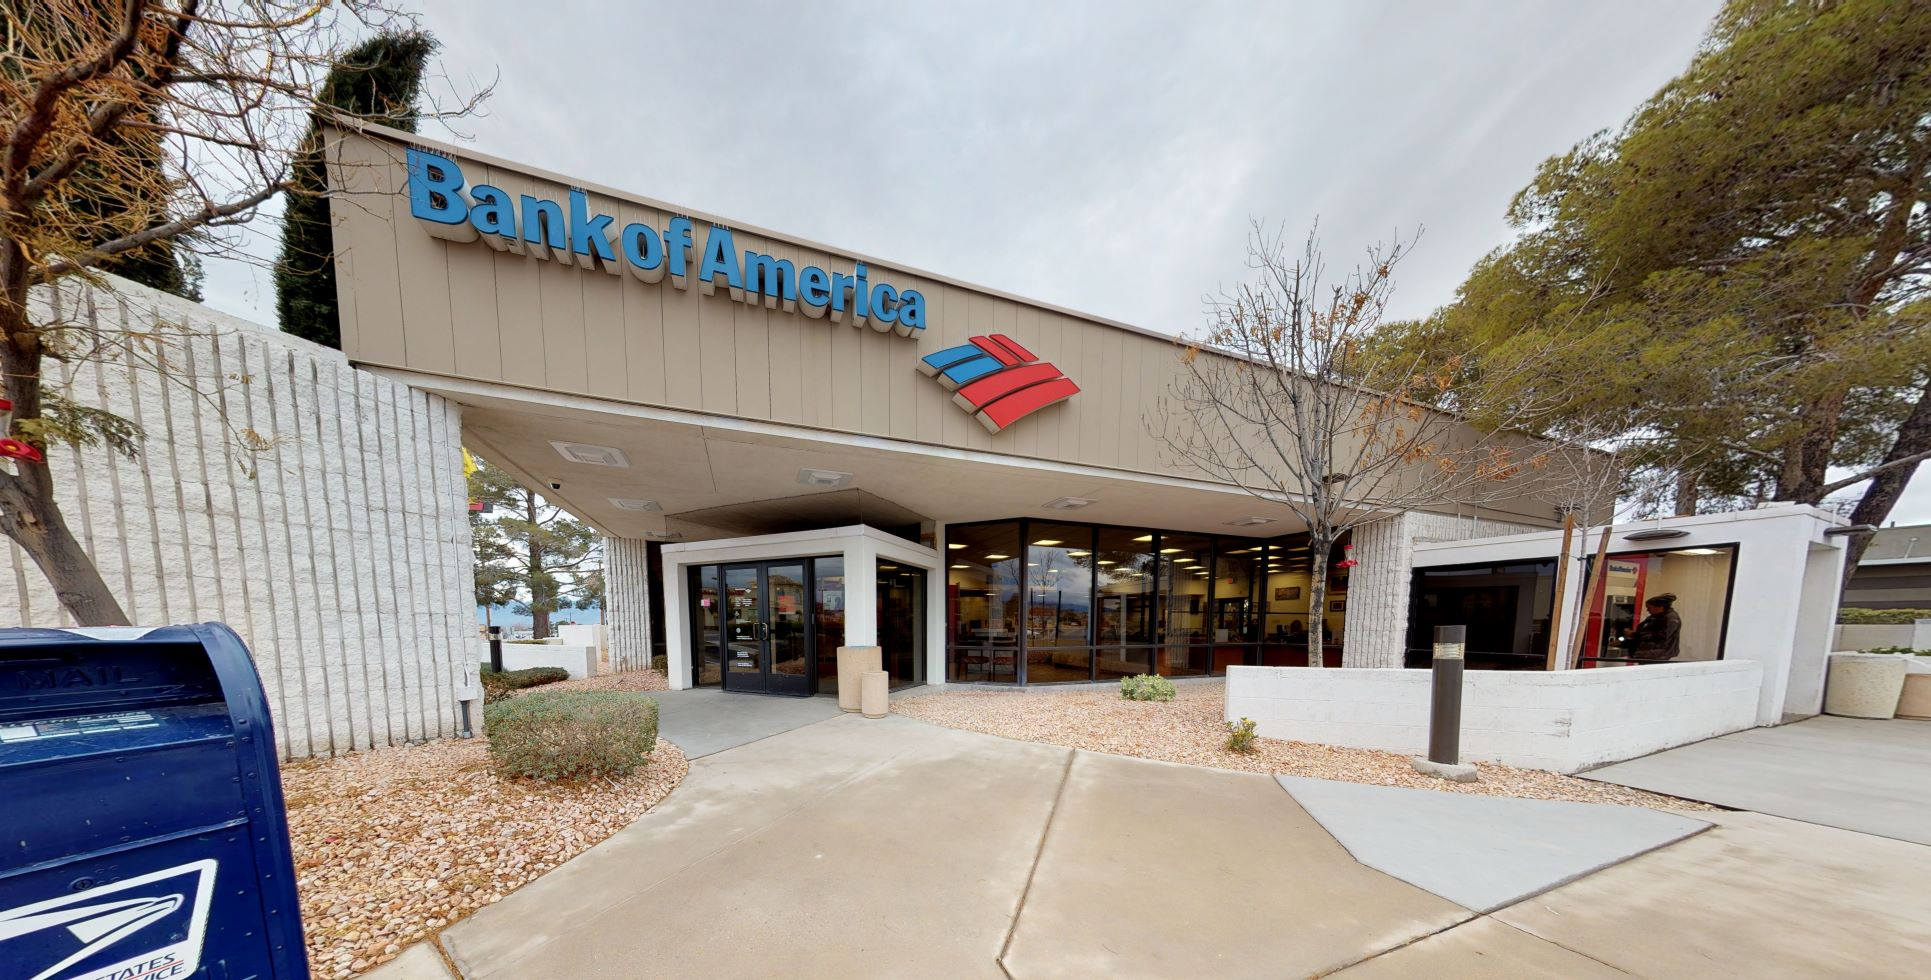 Bank of America financial center with drive-thru ATM   750 S Highway 160, Pahrump, NV 89048